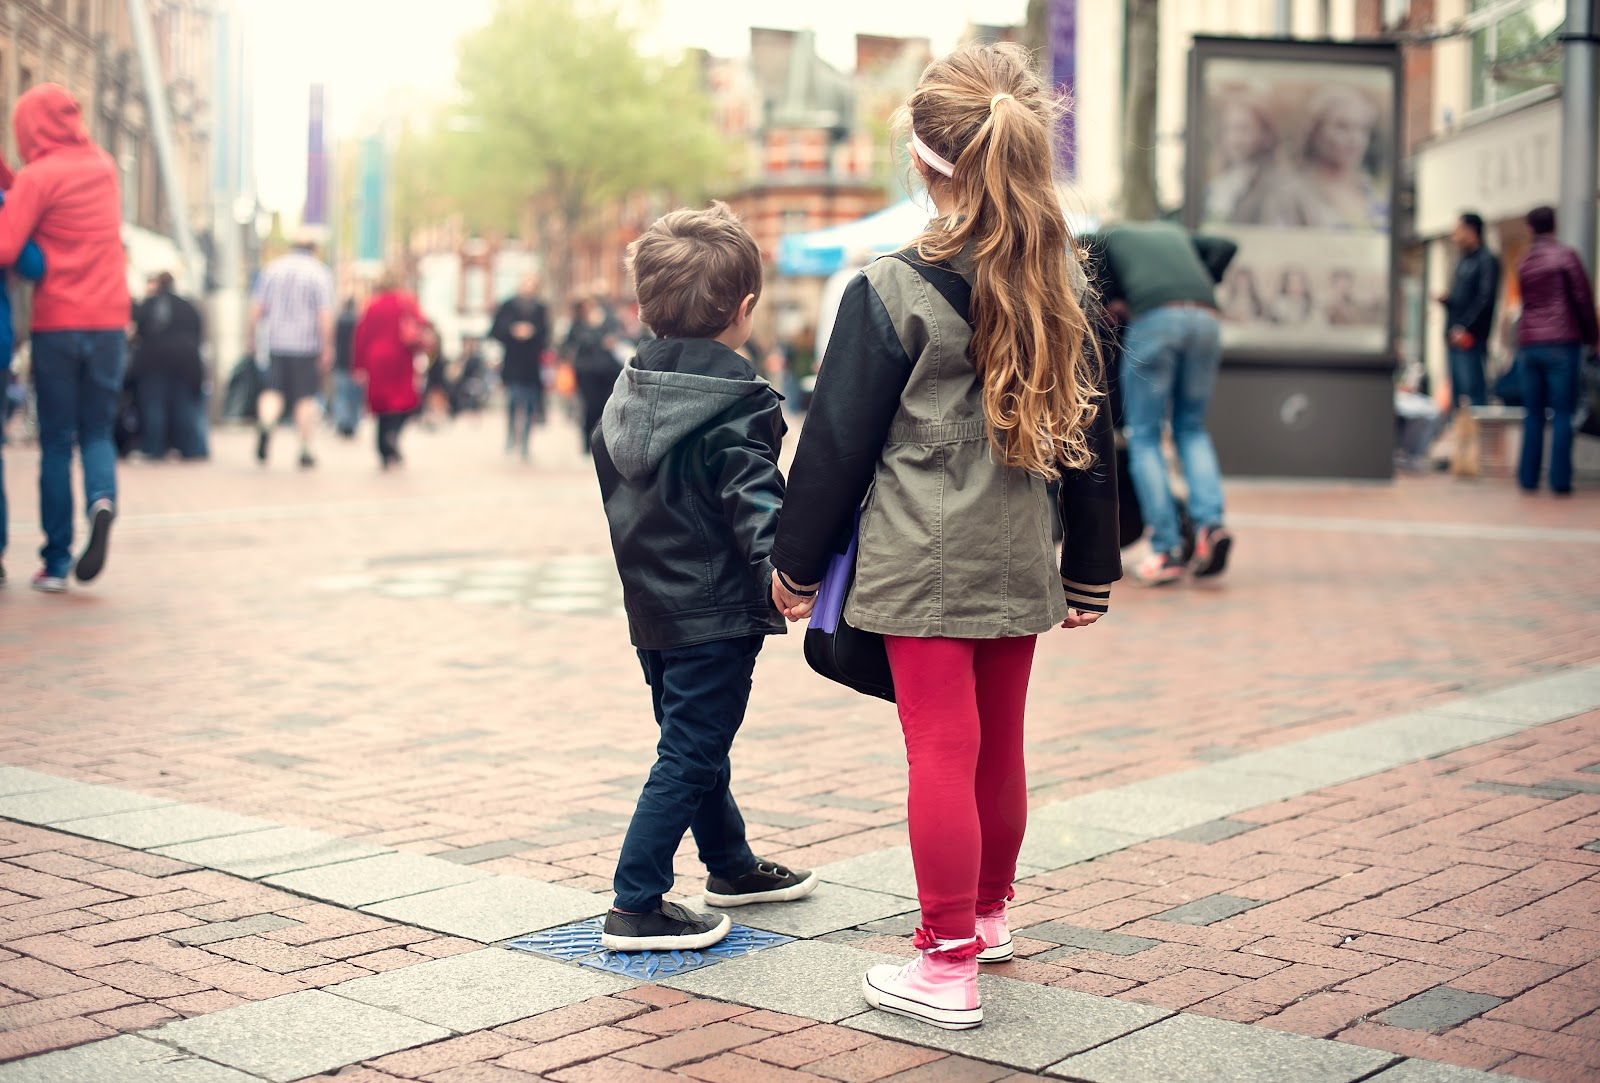 A young boy and girl walking alone in a crowded public square